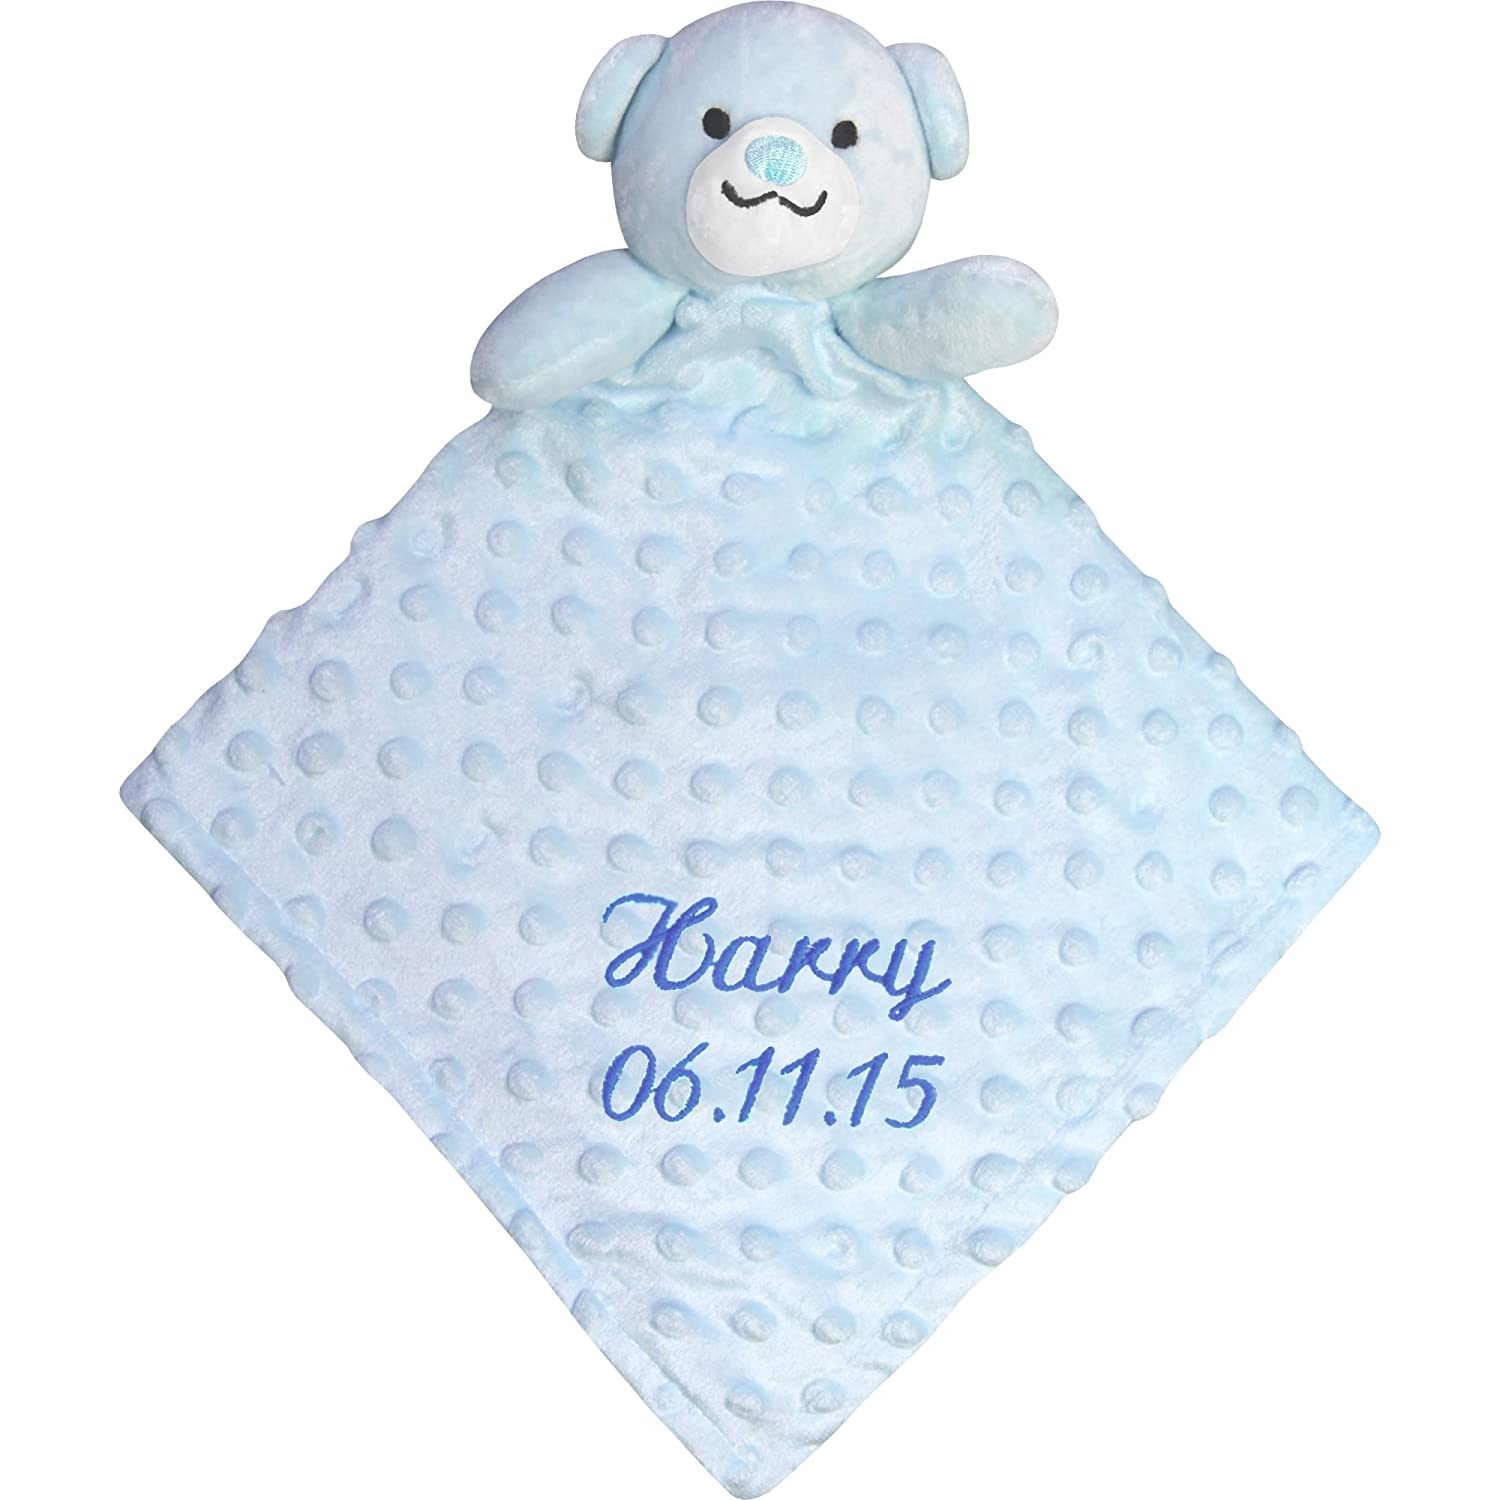 Personalised Baby Super Soft & Fluffy Comforter Blanket with 3D Teddy Bear (Blue) TeddyT's